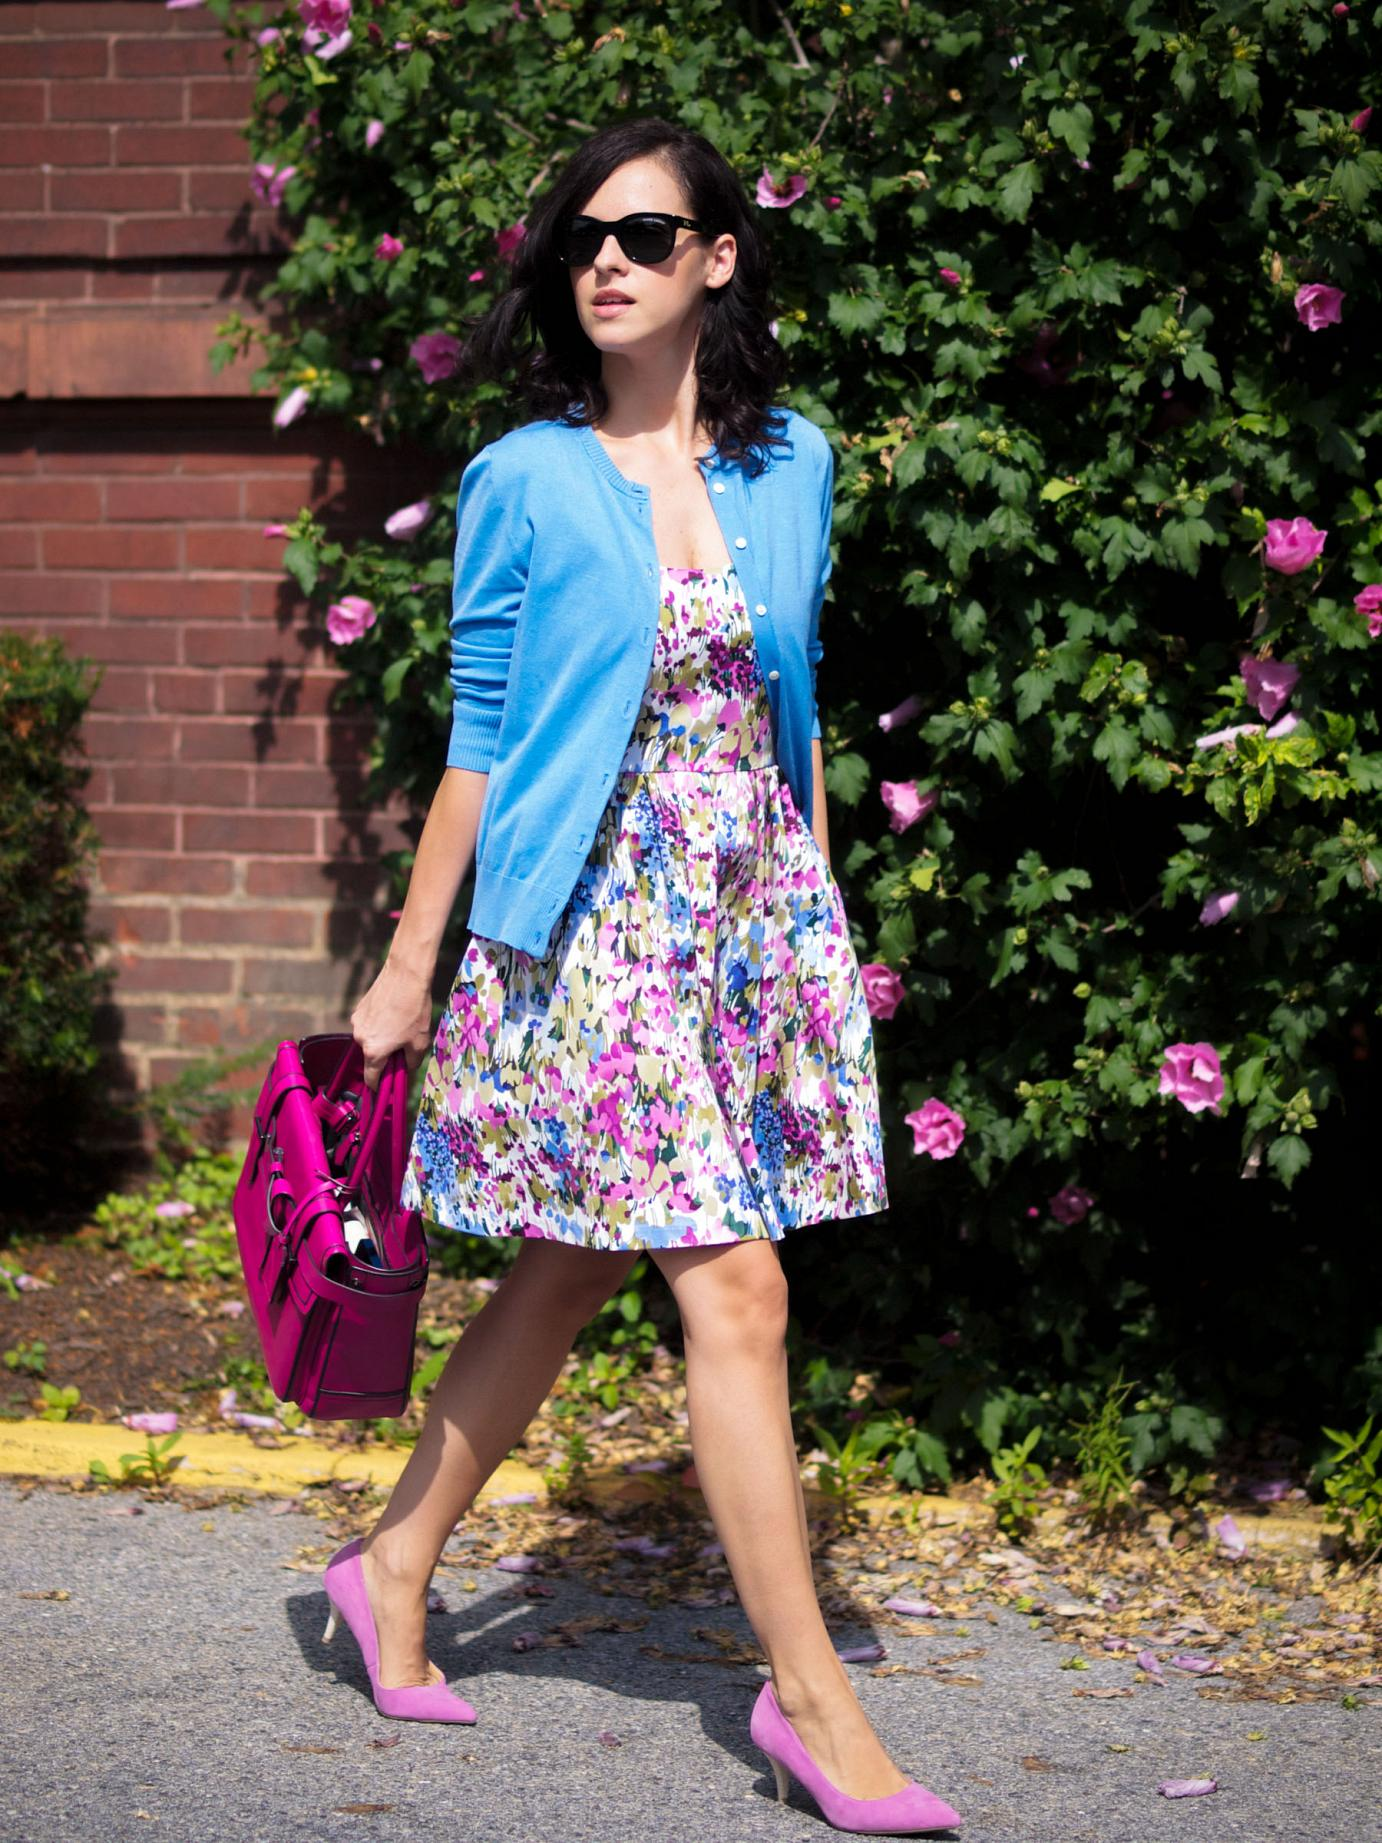 bittersweet colours, floral painted dress, j.crew cardigan, joe fresh, pink pumps, kitten heels, reed krakoff bag, summer dress, street style